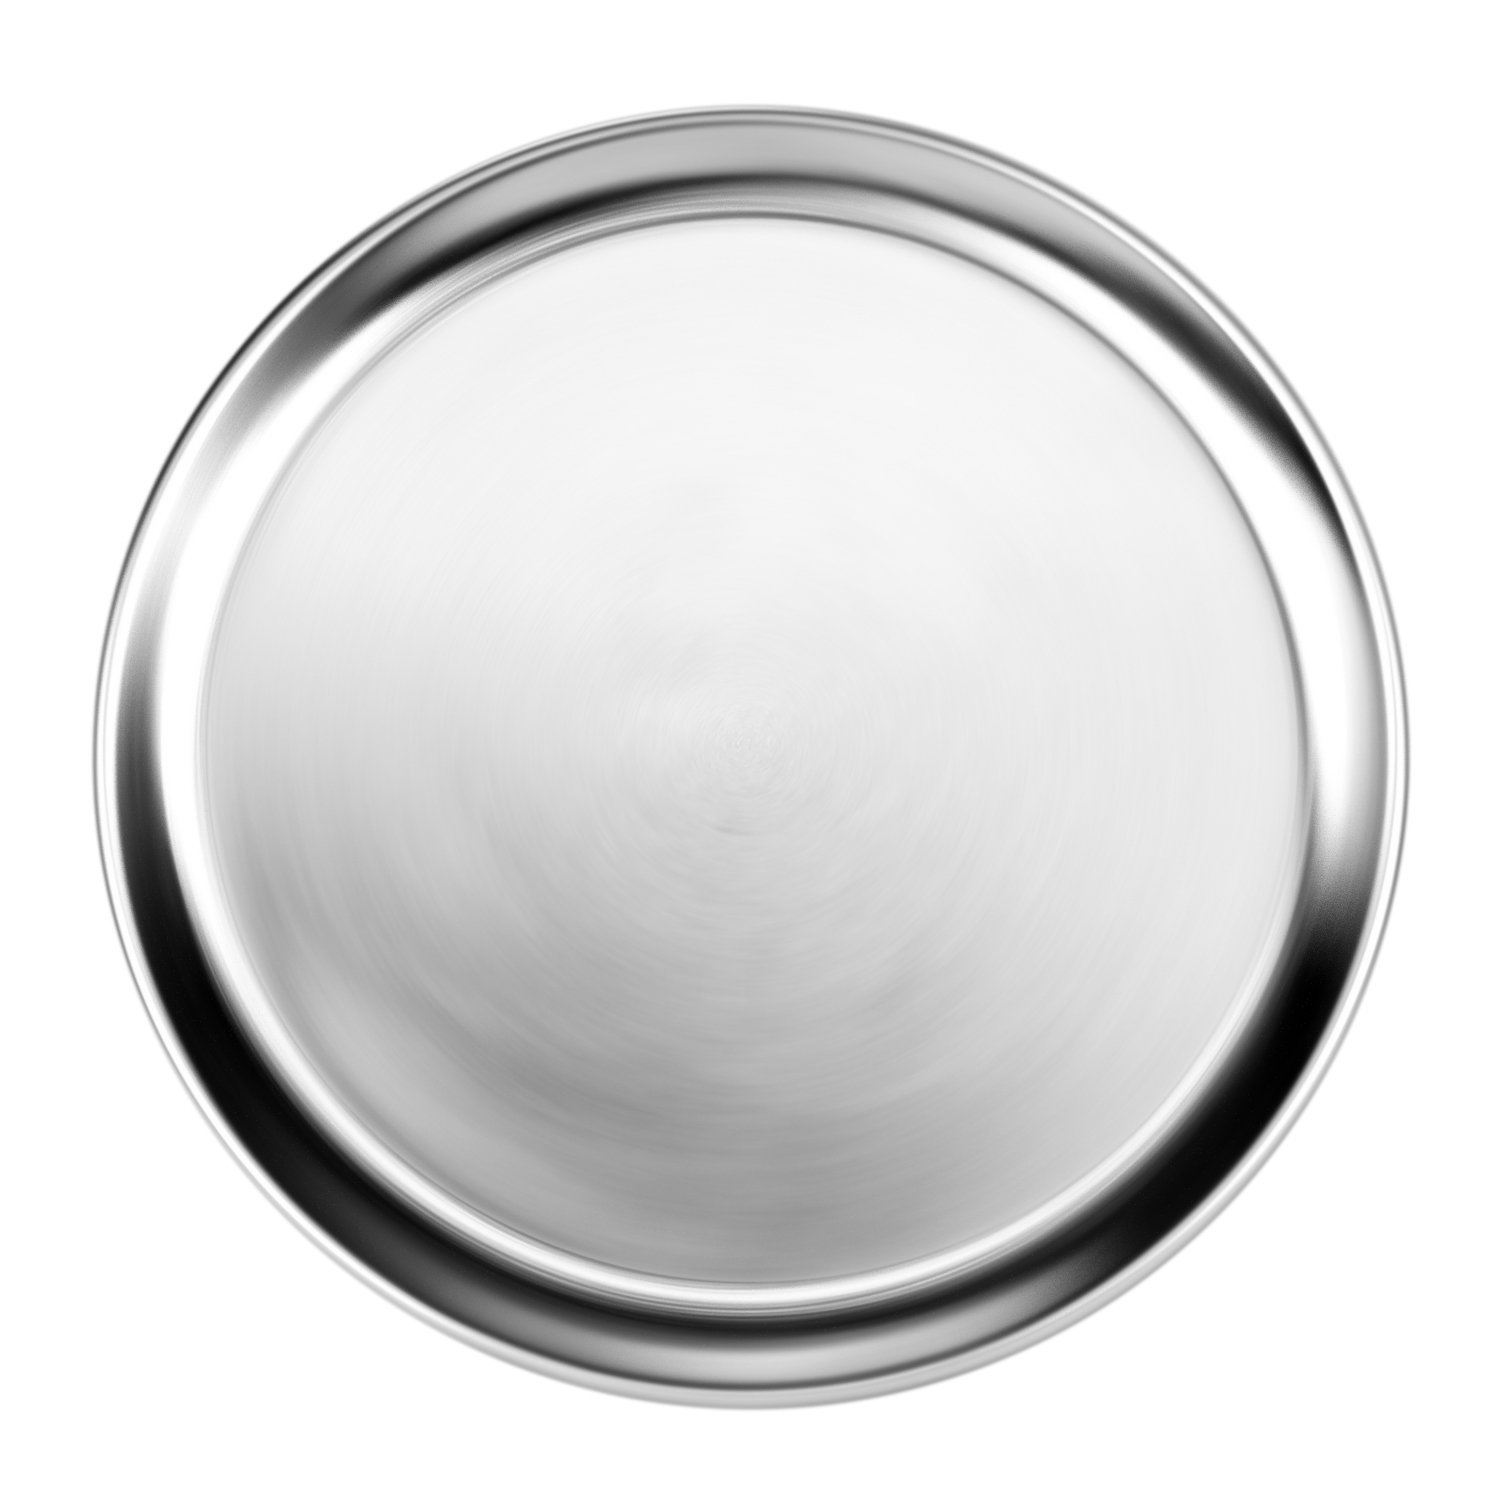 New Star Foodservice 50776 Pizza Pan / Tray, Wide Rim, Aluminum, 18 Inch